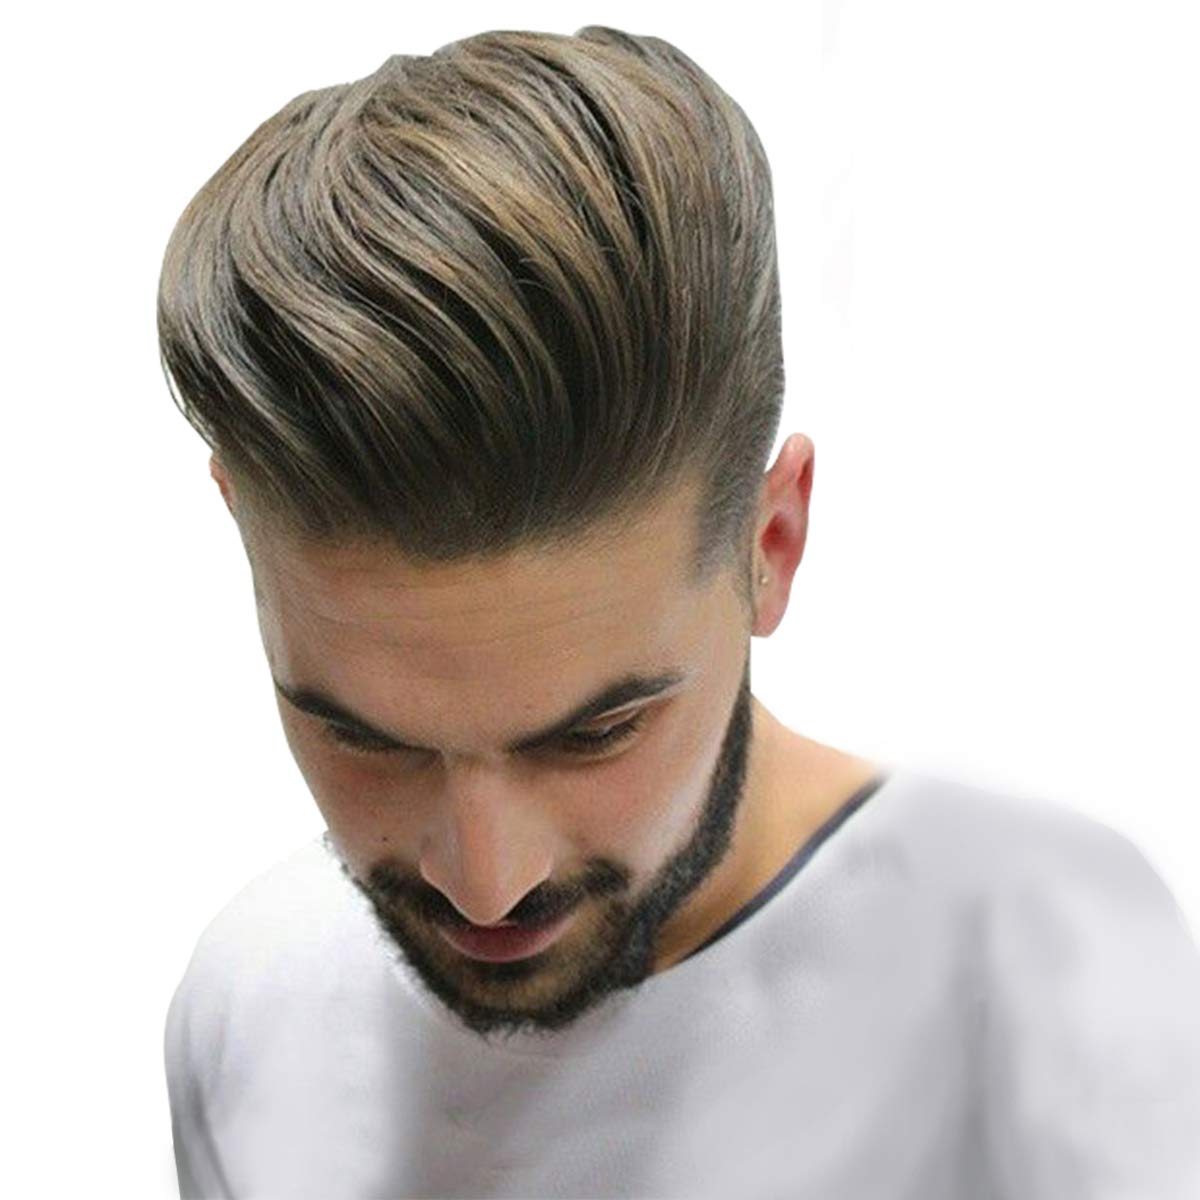 Homelix Skin Men's Hair Toupee Human Hair Pieces Real Hair Toupee For Men Wig